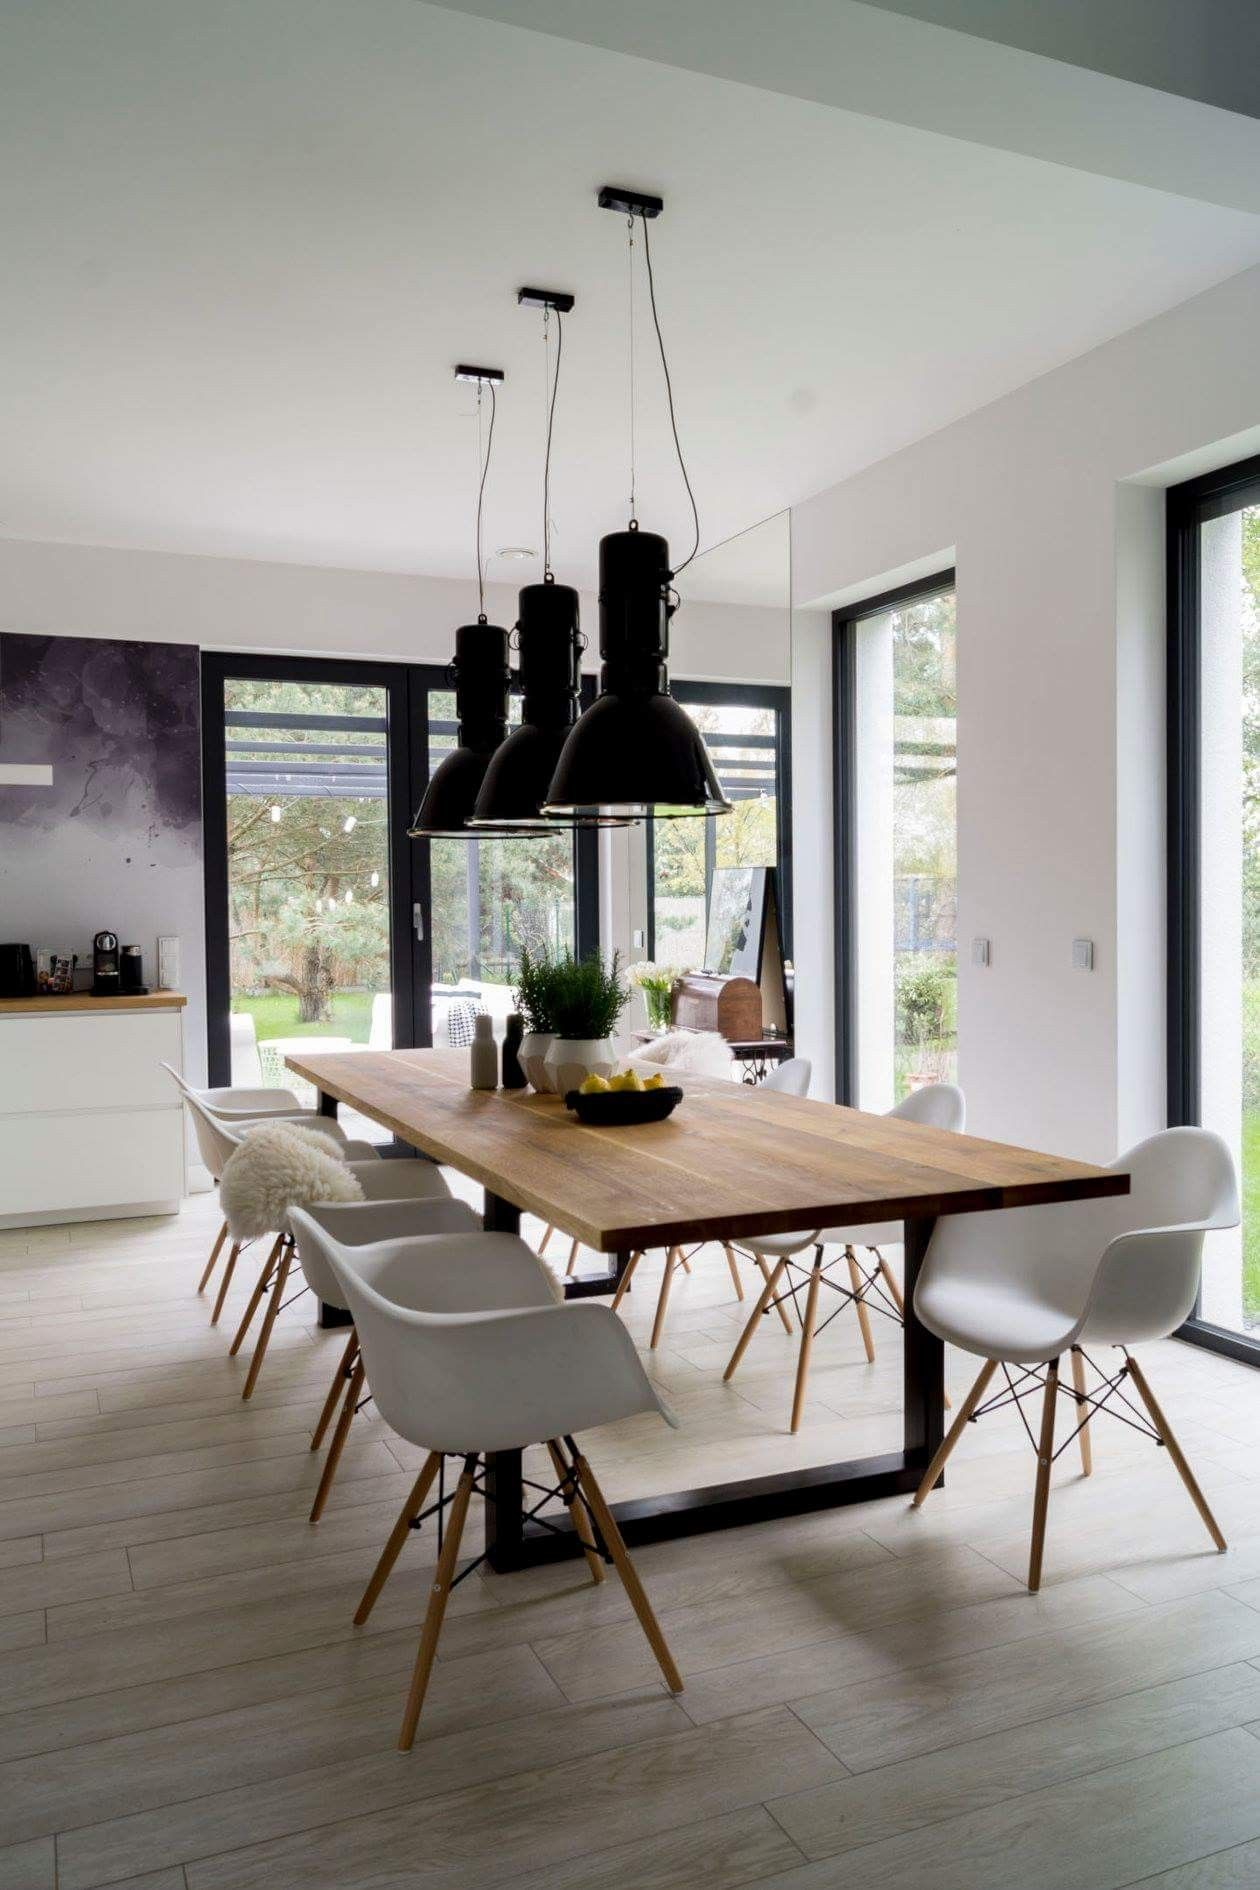 Pin by Nicky Cooper on Jadalnia | Dining room design modern